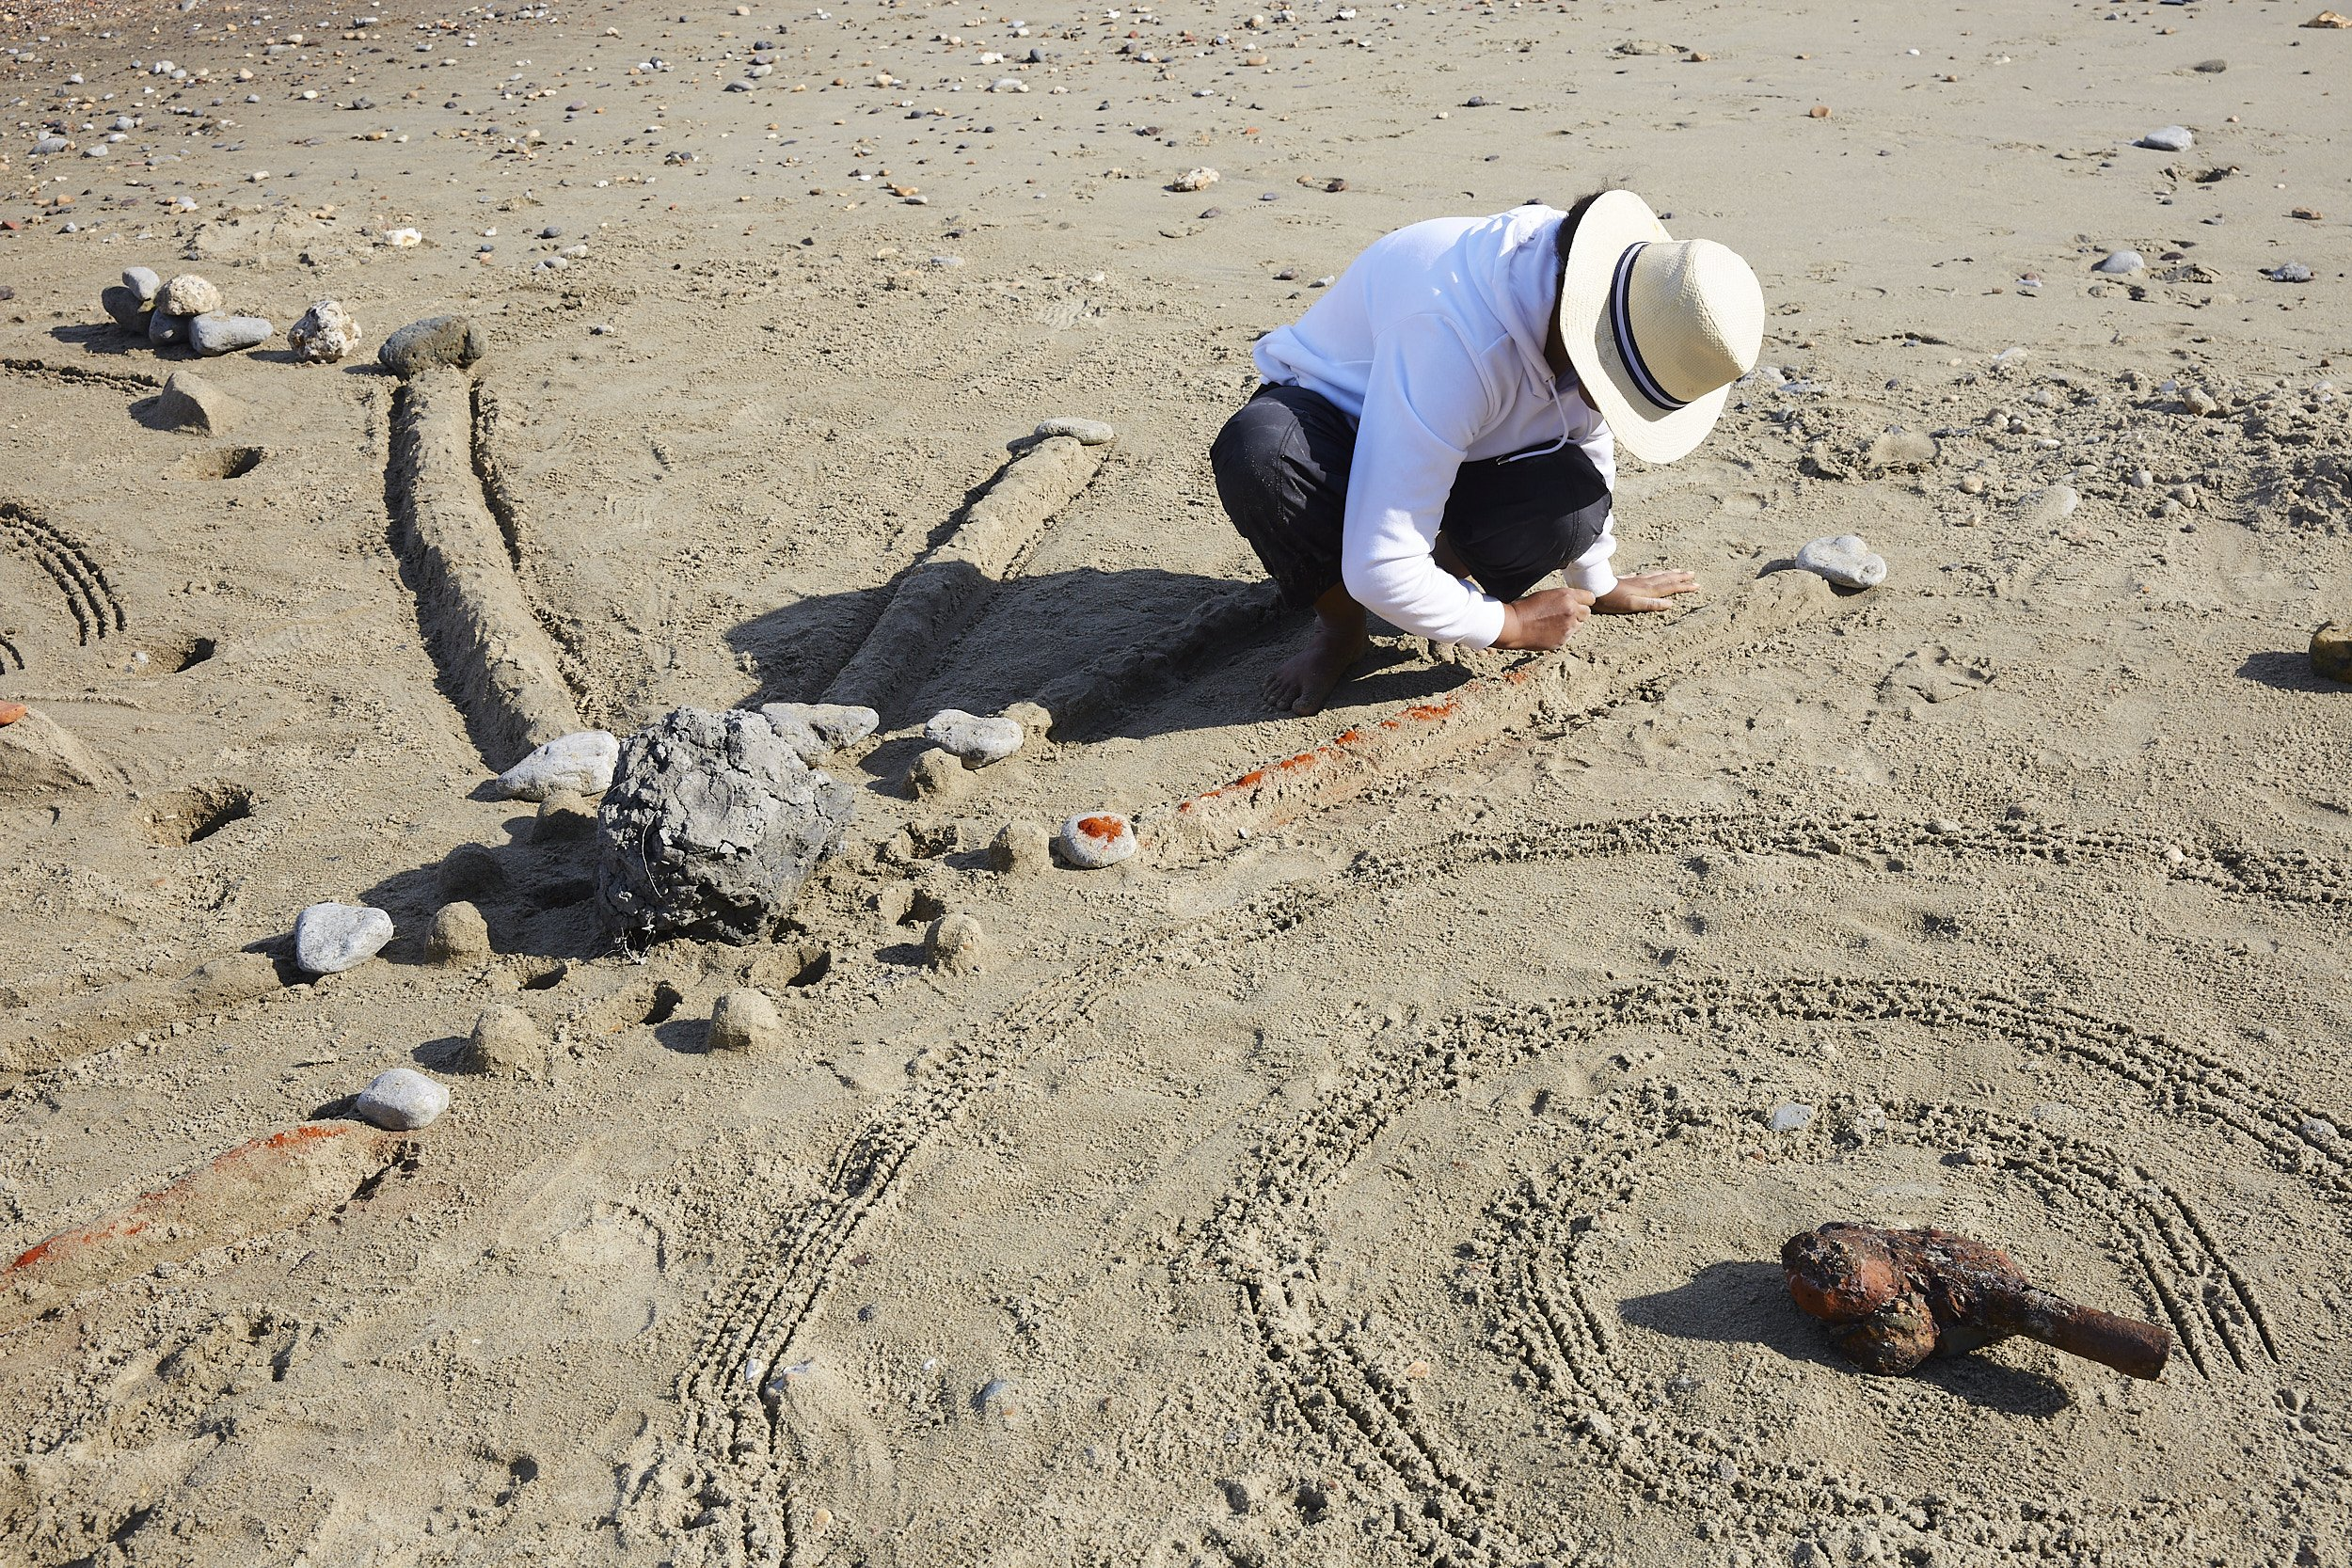 The artist sprinkles red powder along a long mound of sand that ends in a rock on either side.